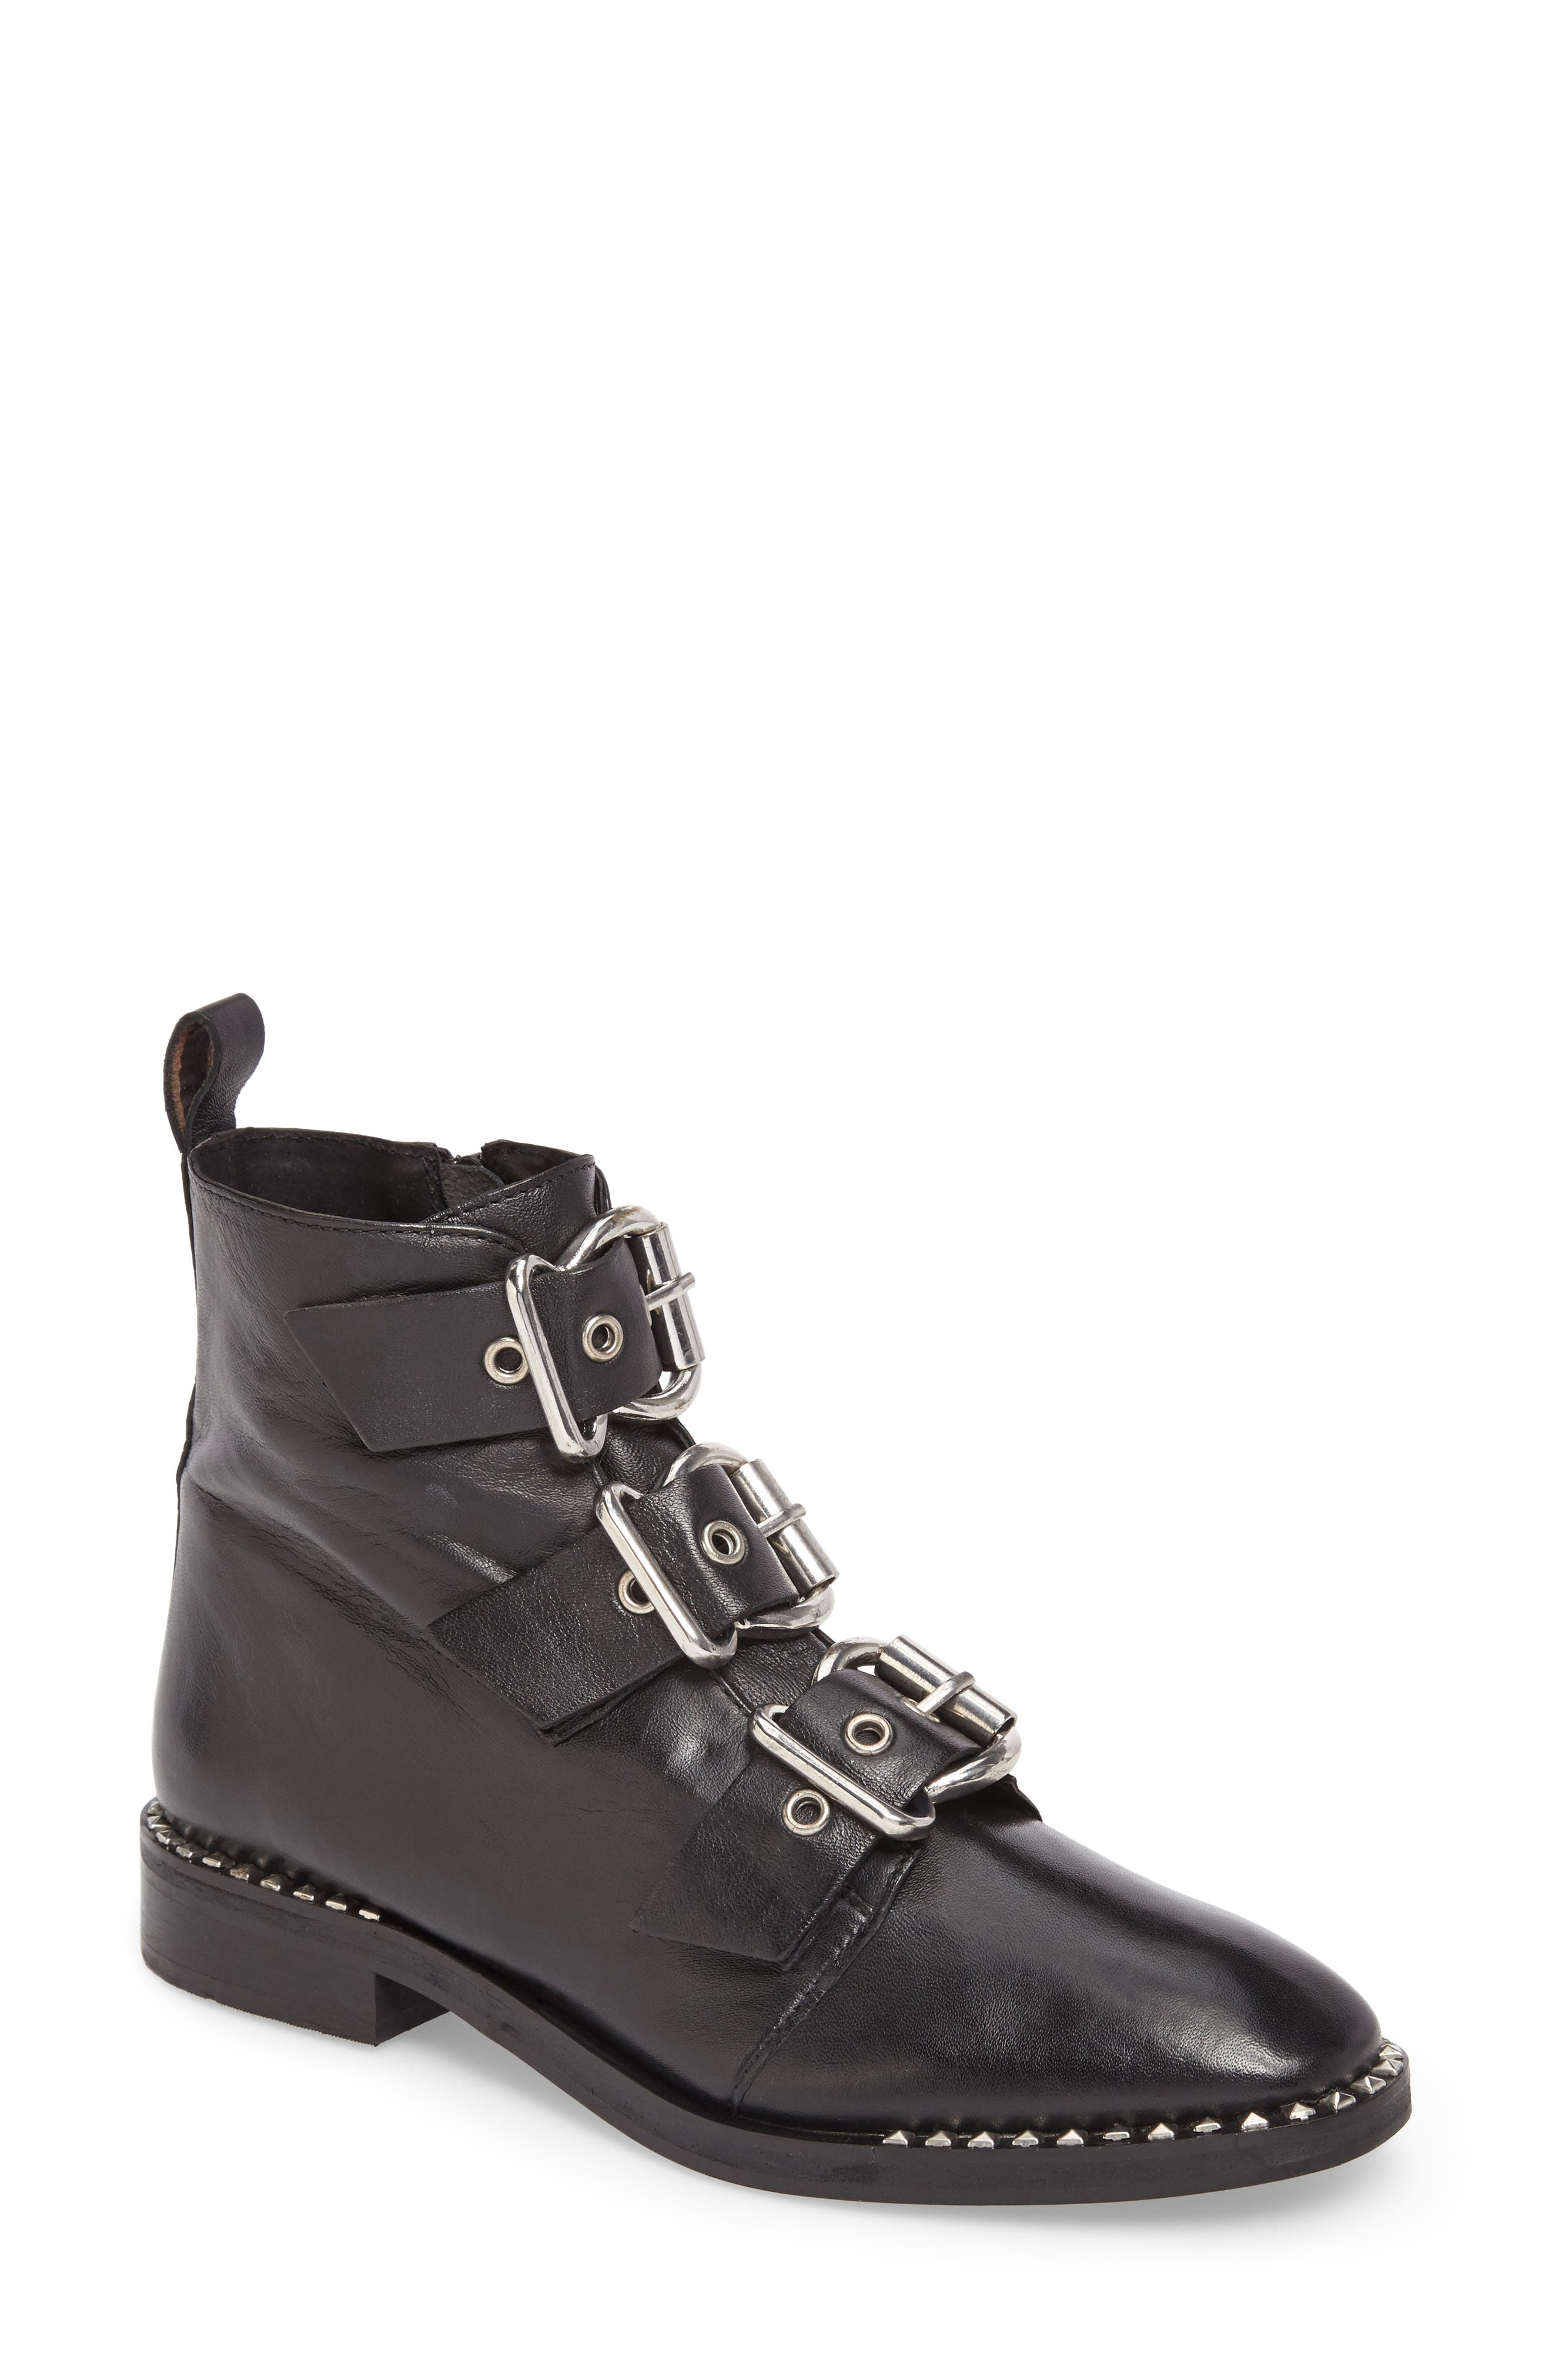 Alfie Buckle Ankle Boot,                         Main,                         color, Black